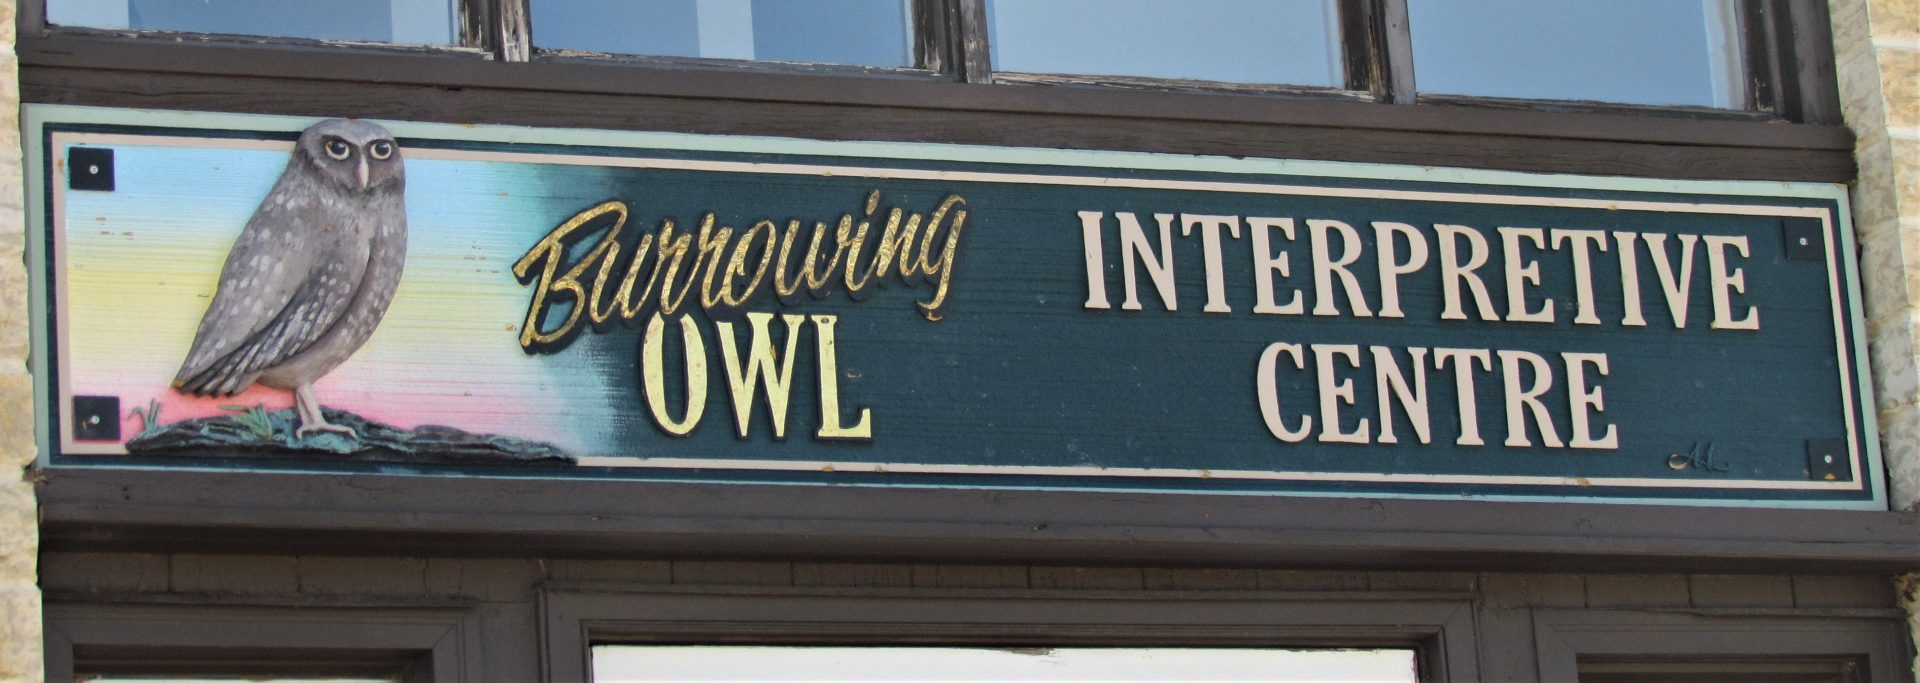 I visited the Burrowing Owl Interpretive Centre